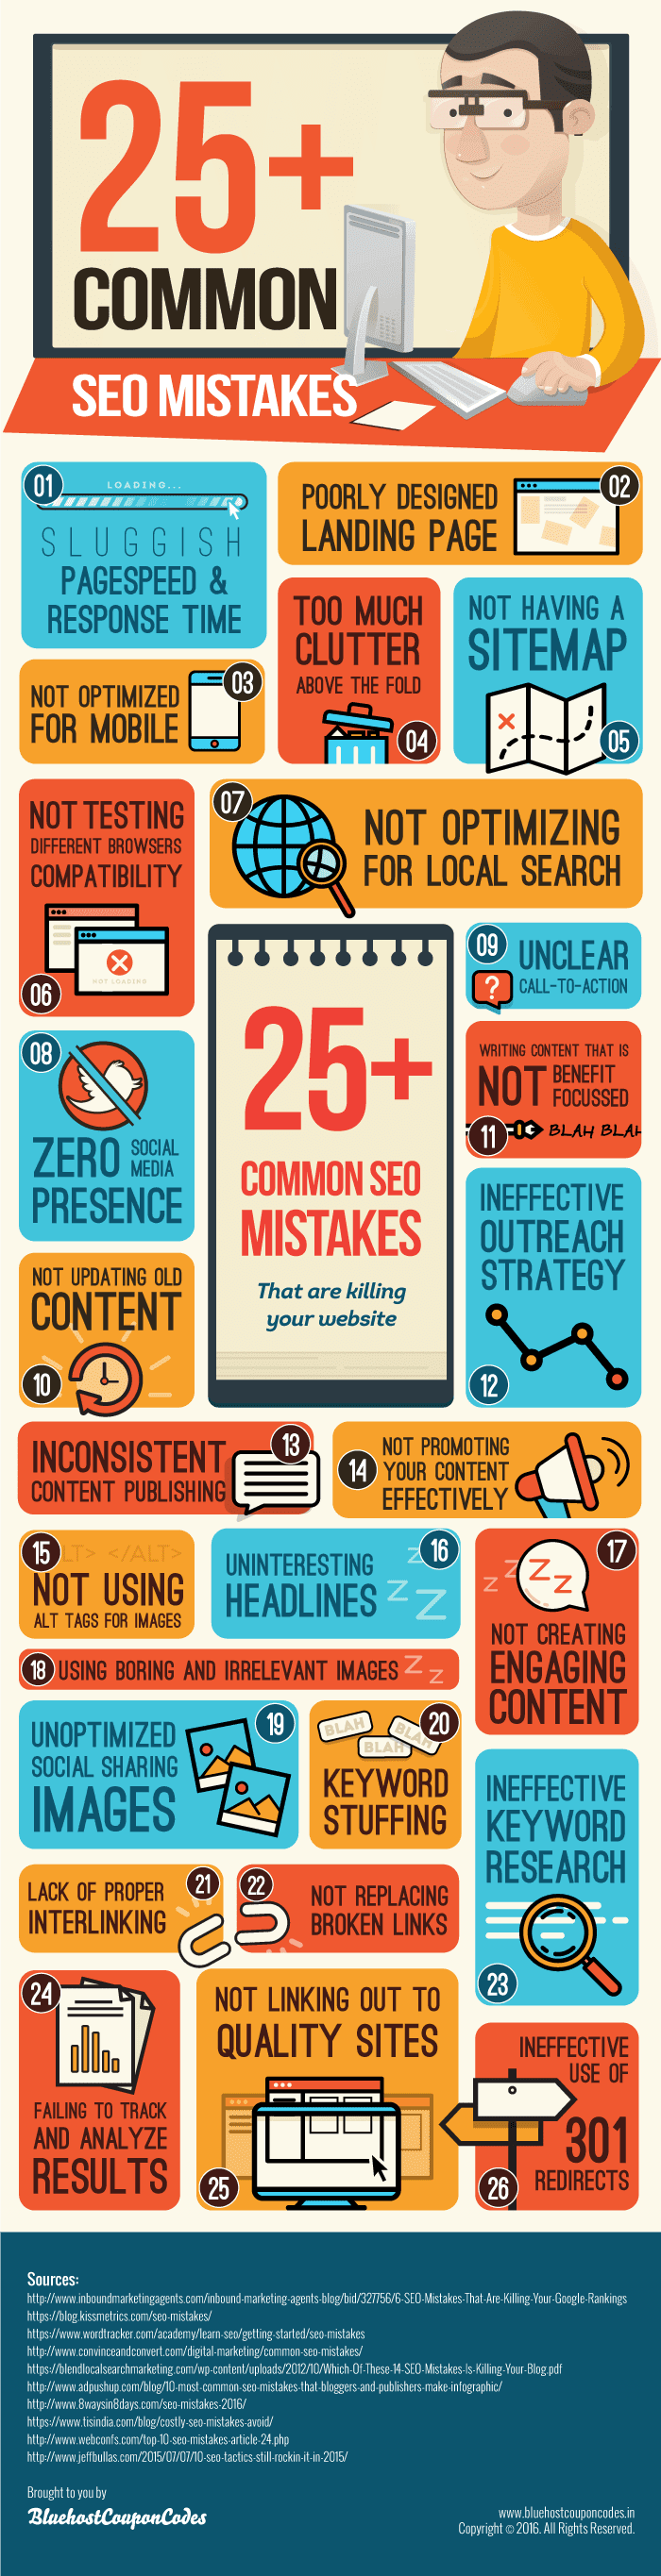 Common SEO Mistakes That Are Killing Your Website[Infographic]